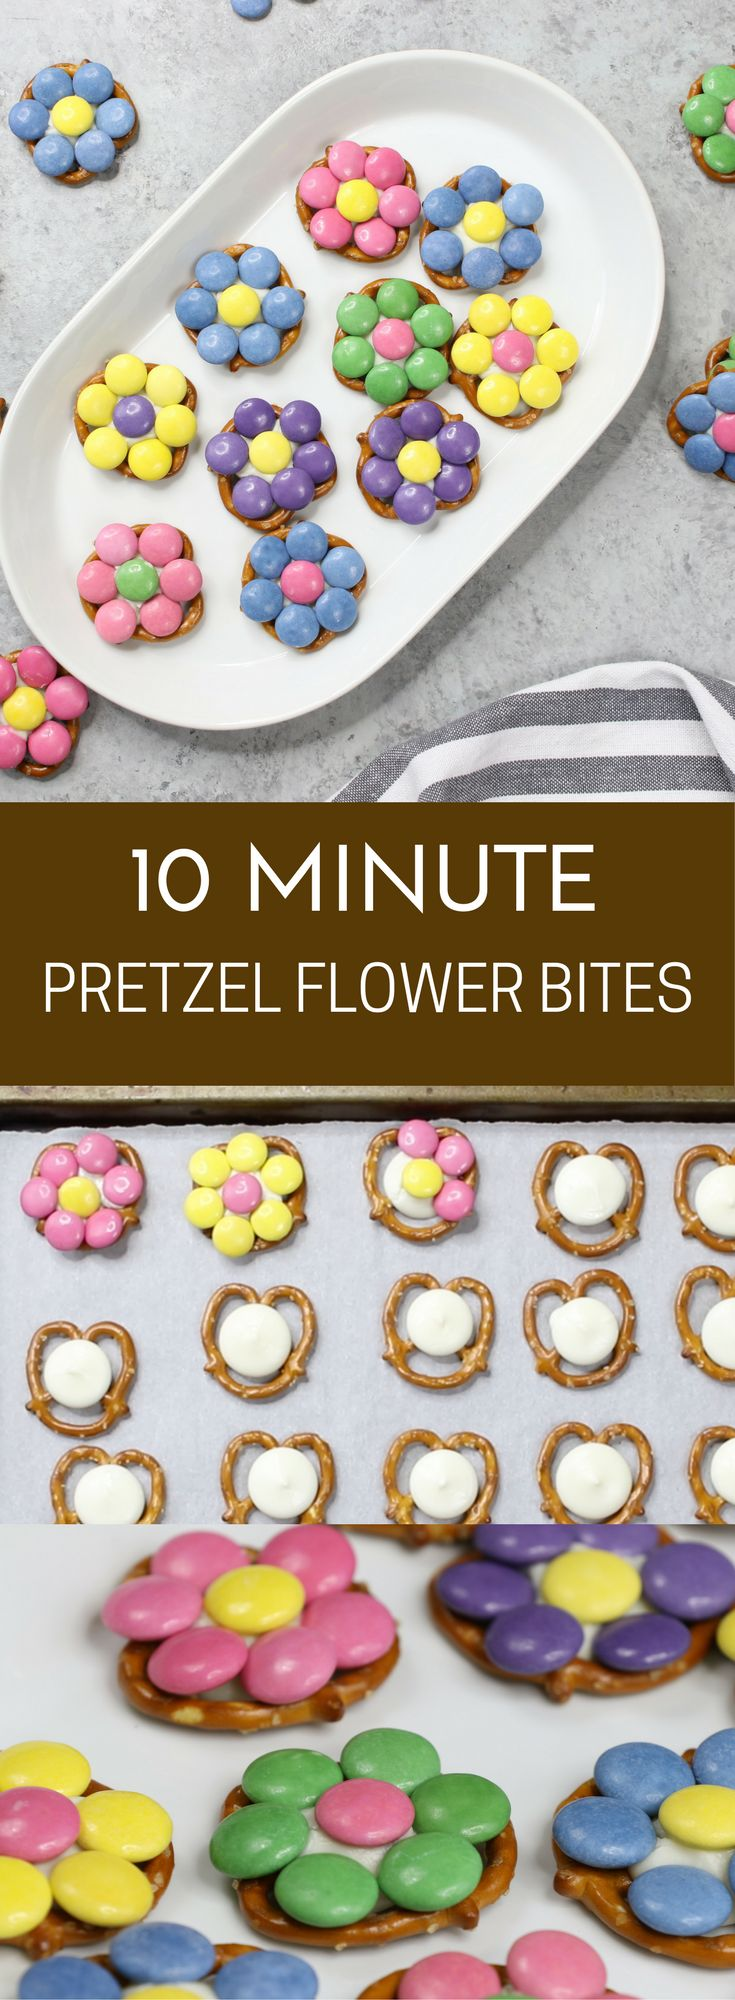 Pretzel Flower Bites are very easy to make, with just 3 ingredients and only take 10 to 15 minutes to make. Perfect easter recipe!